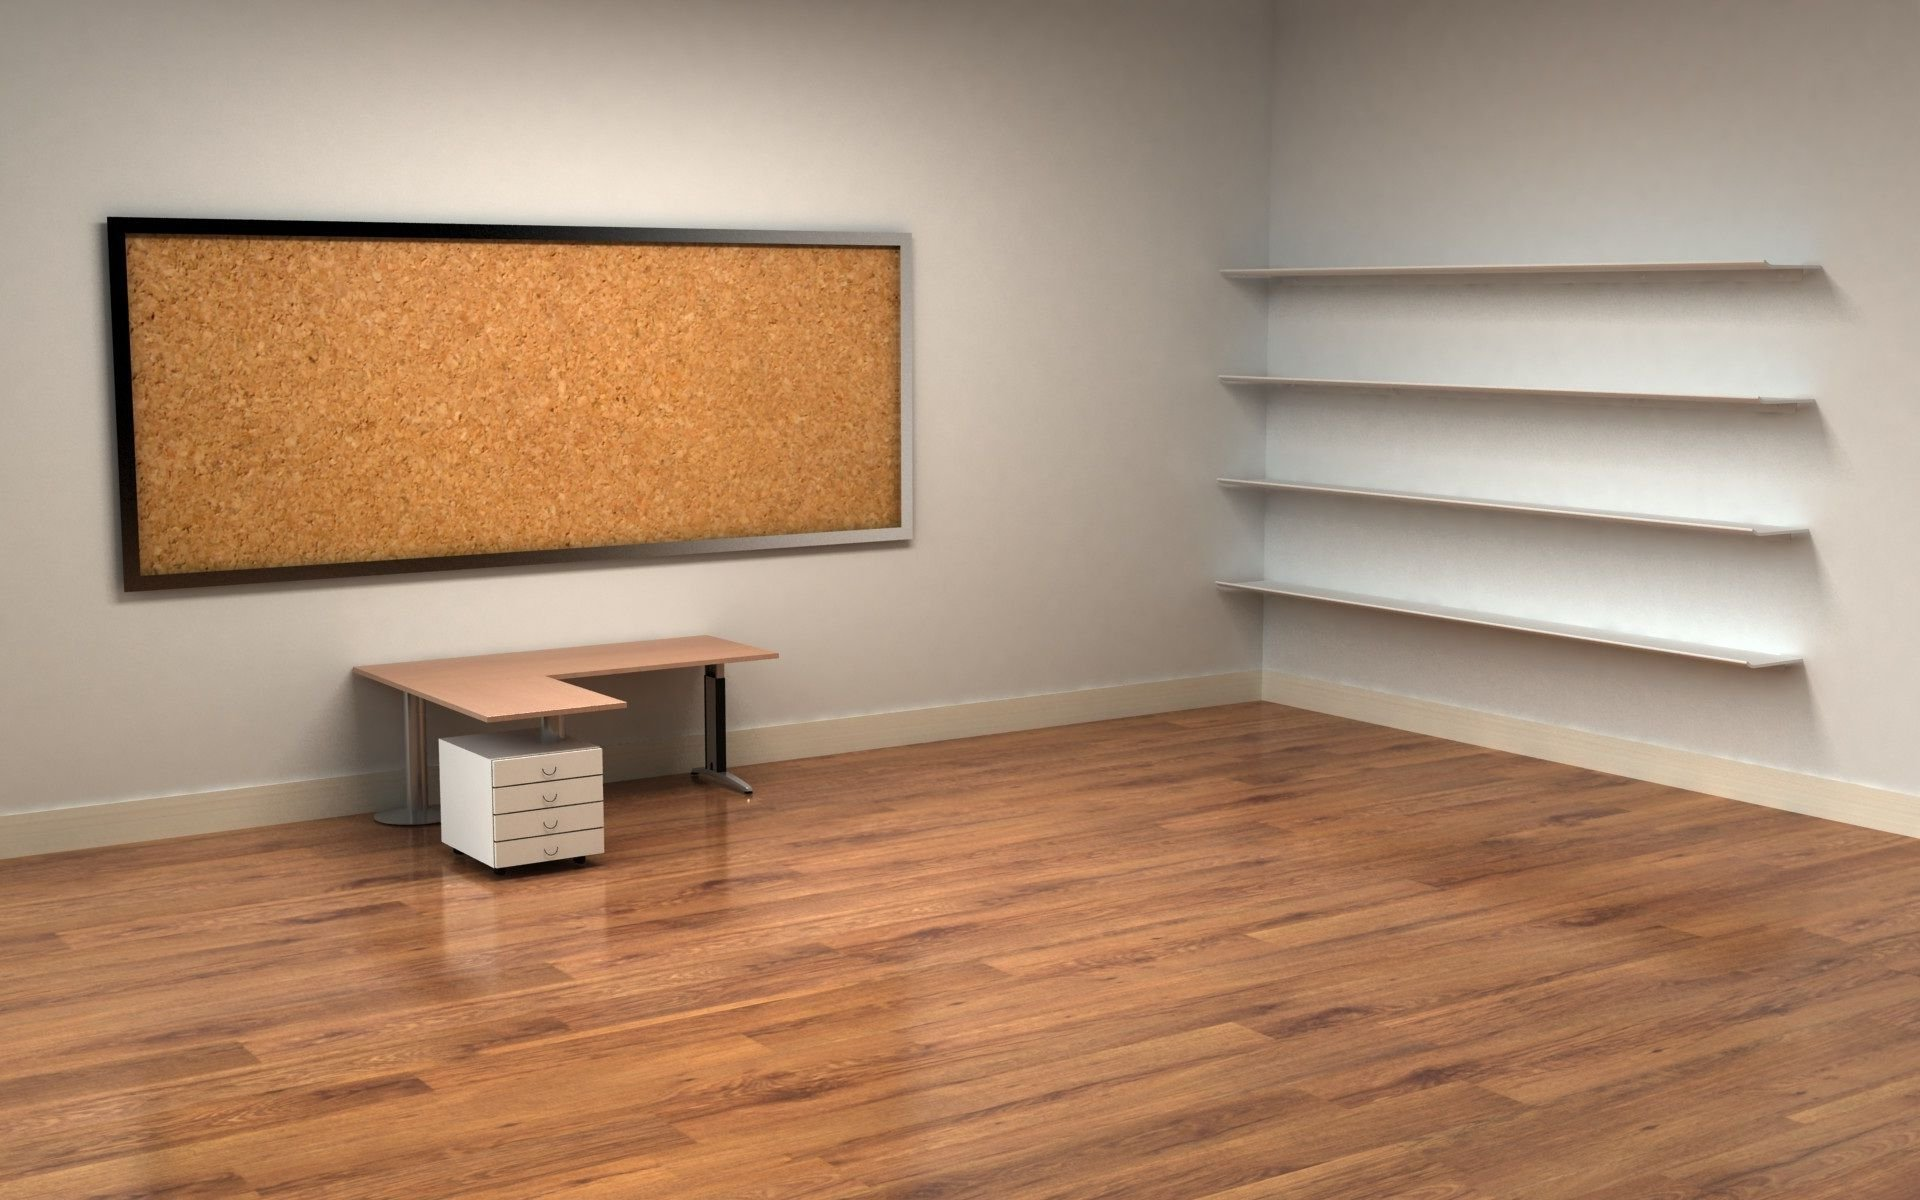 359 3598586 pixels size an empty room for mobile best